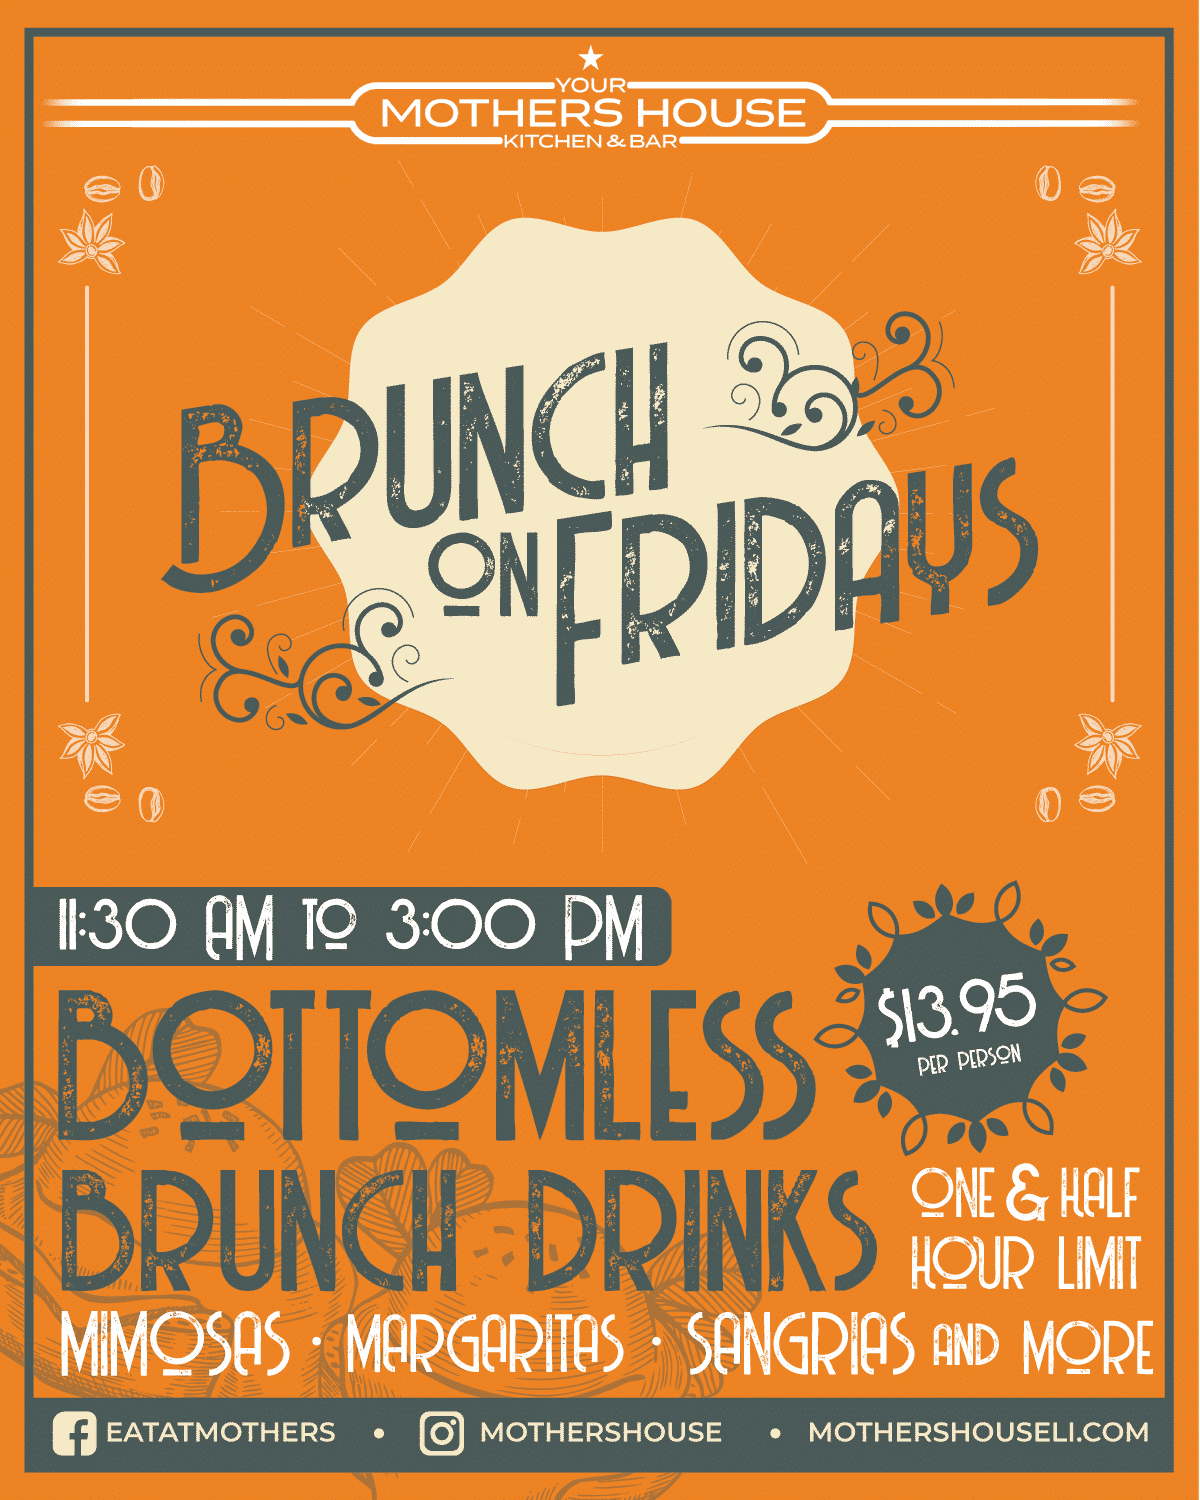 Flyer for Brunch on Fridays at 11:30am to 3pm bottomless brunch drinks, $13.95per person. one & a half hour limit, mimosas, margaritas, sangrias and more